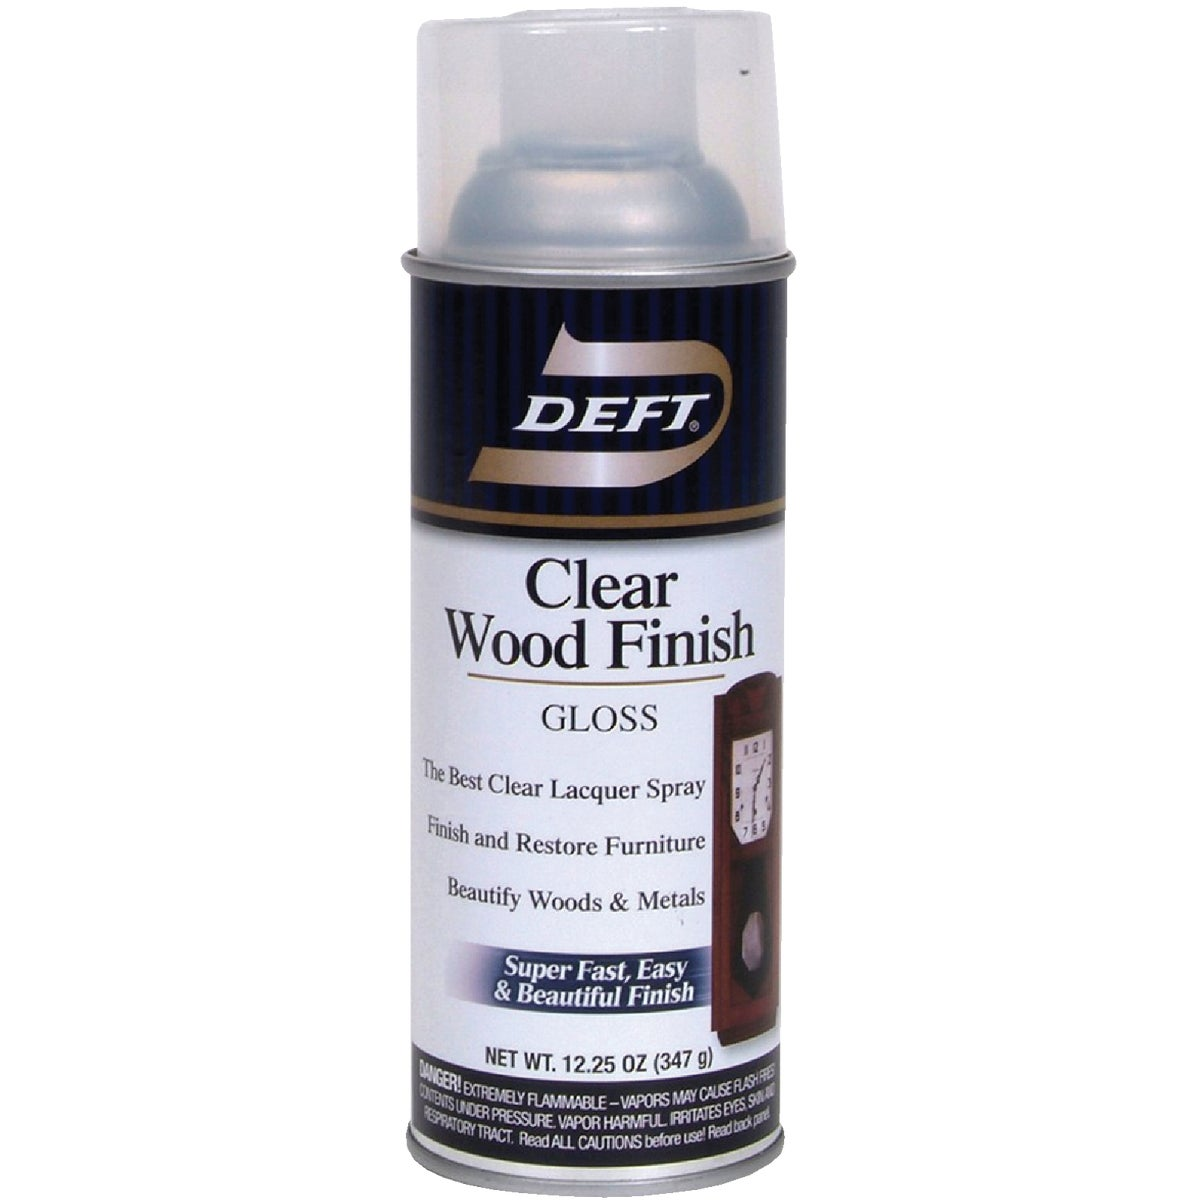 DEFT GLS SPRAY FINISH